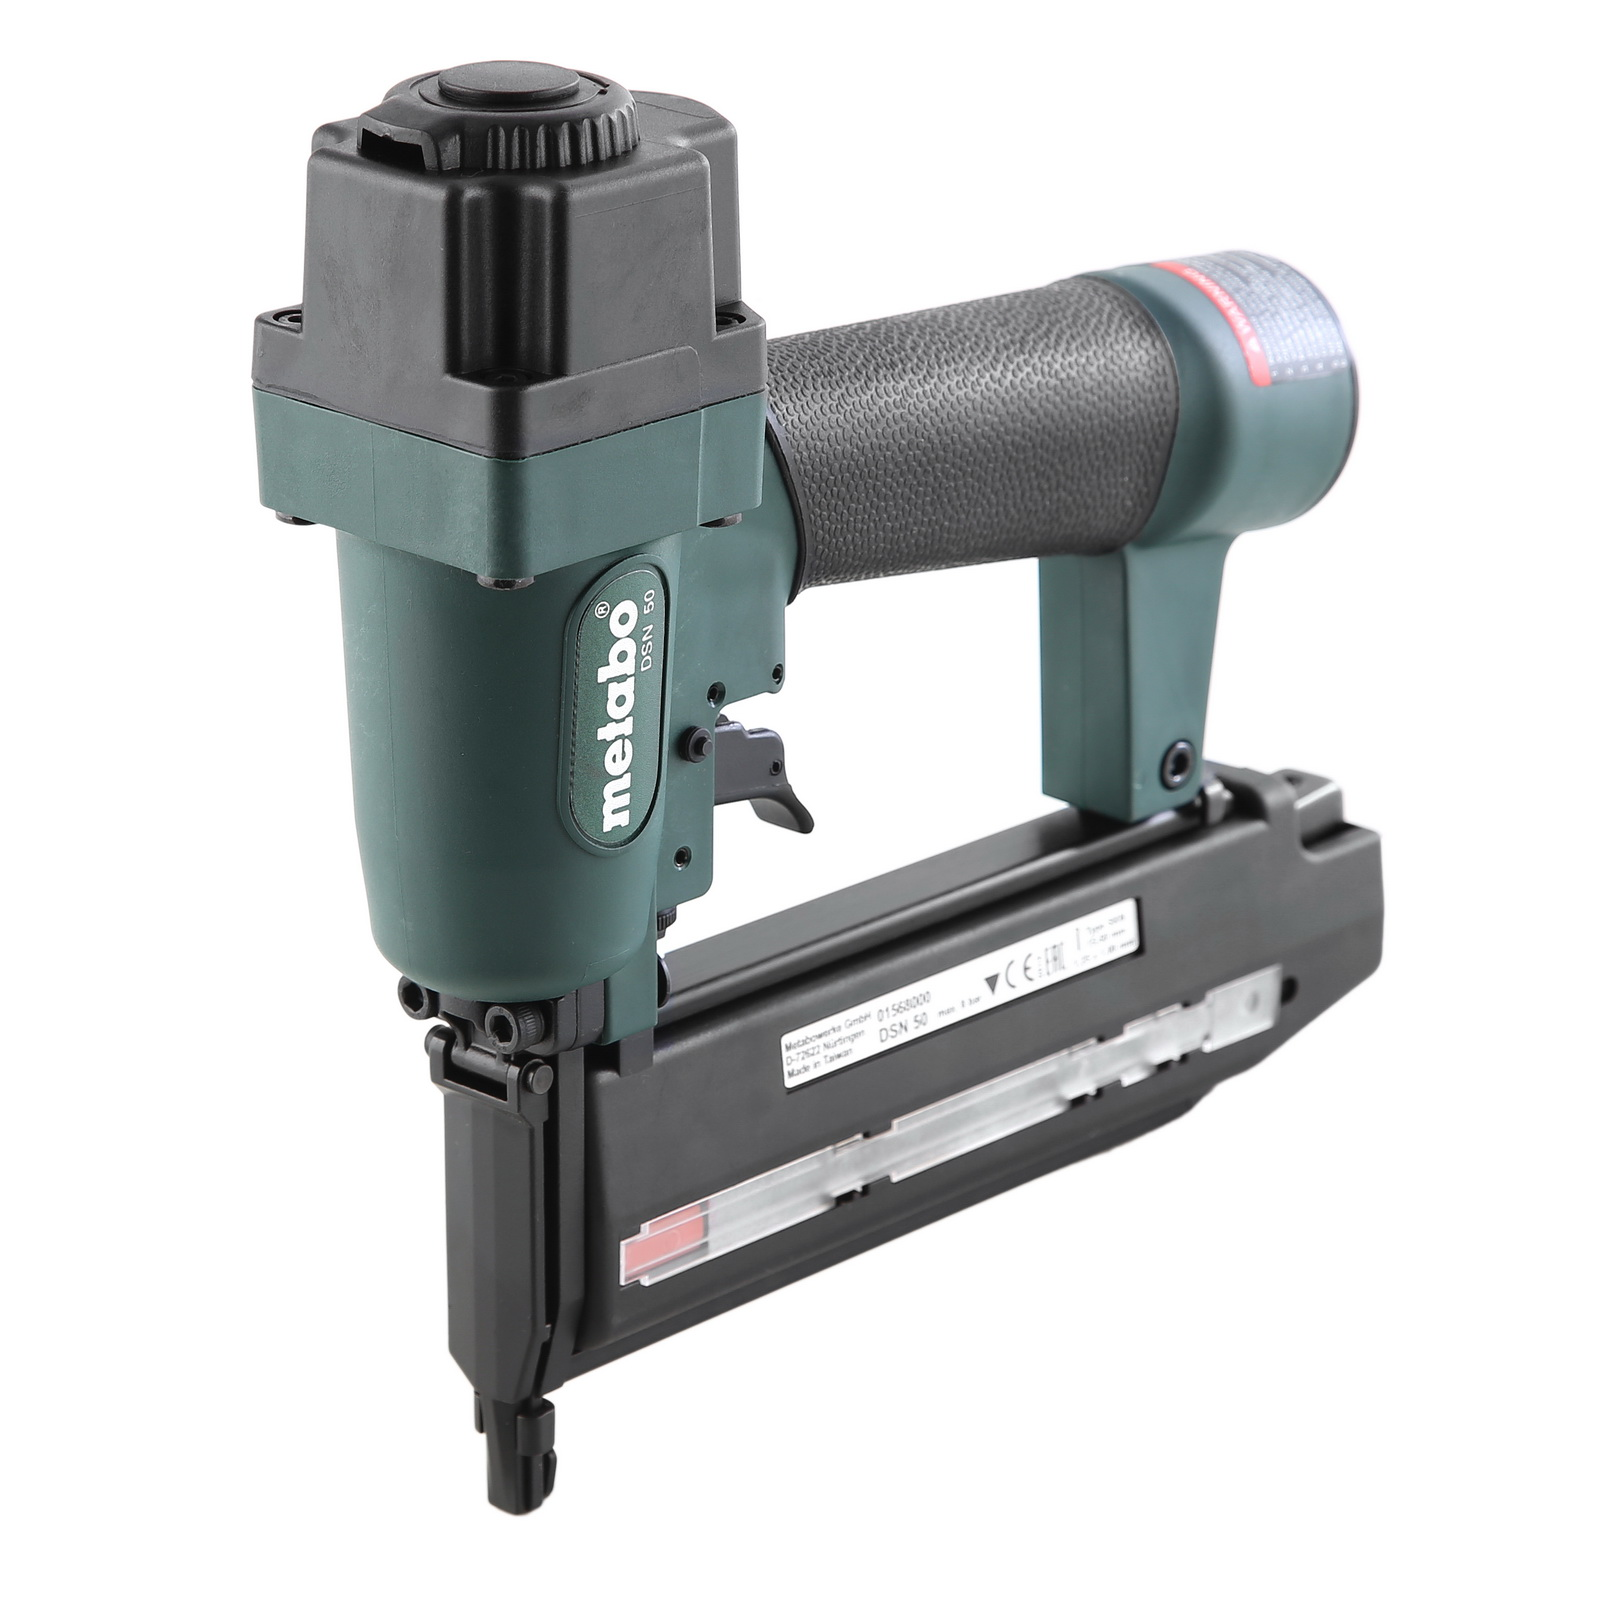 Степлер пневматический Metabo Dsn 50 (601568500) festo dsn 20 125 ppv a stainless steel mini cylinder air cylinder pneumatic air tools dsn series